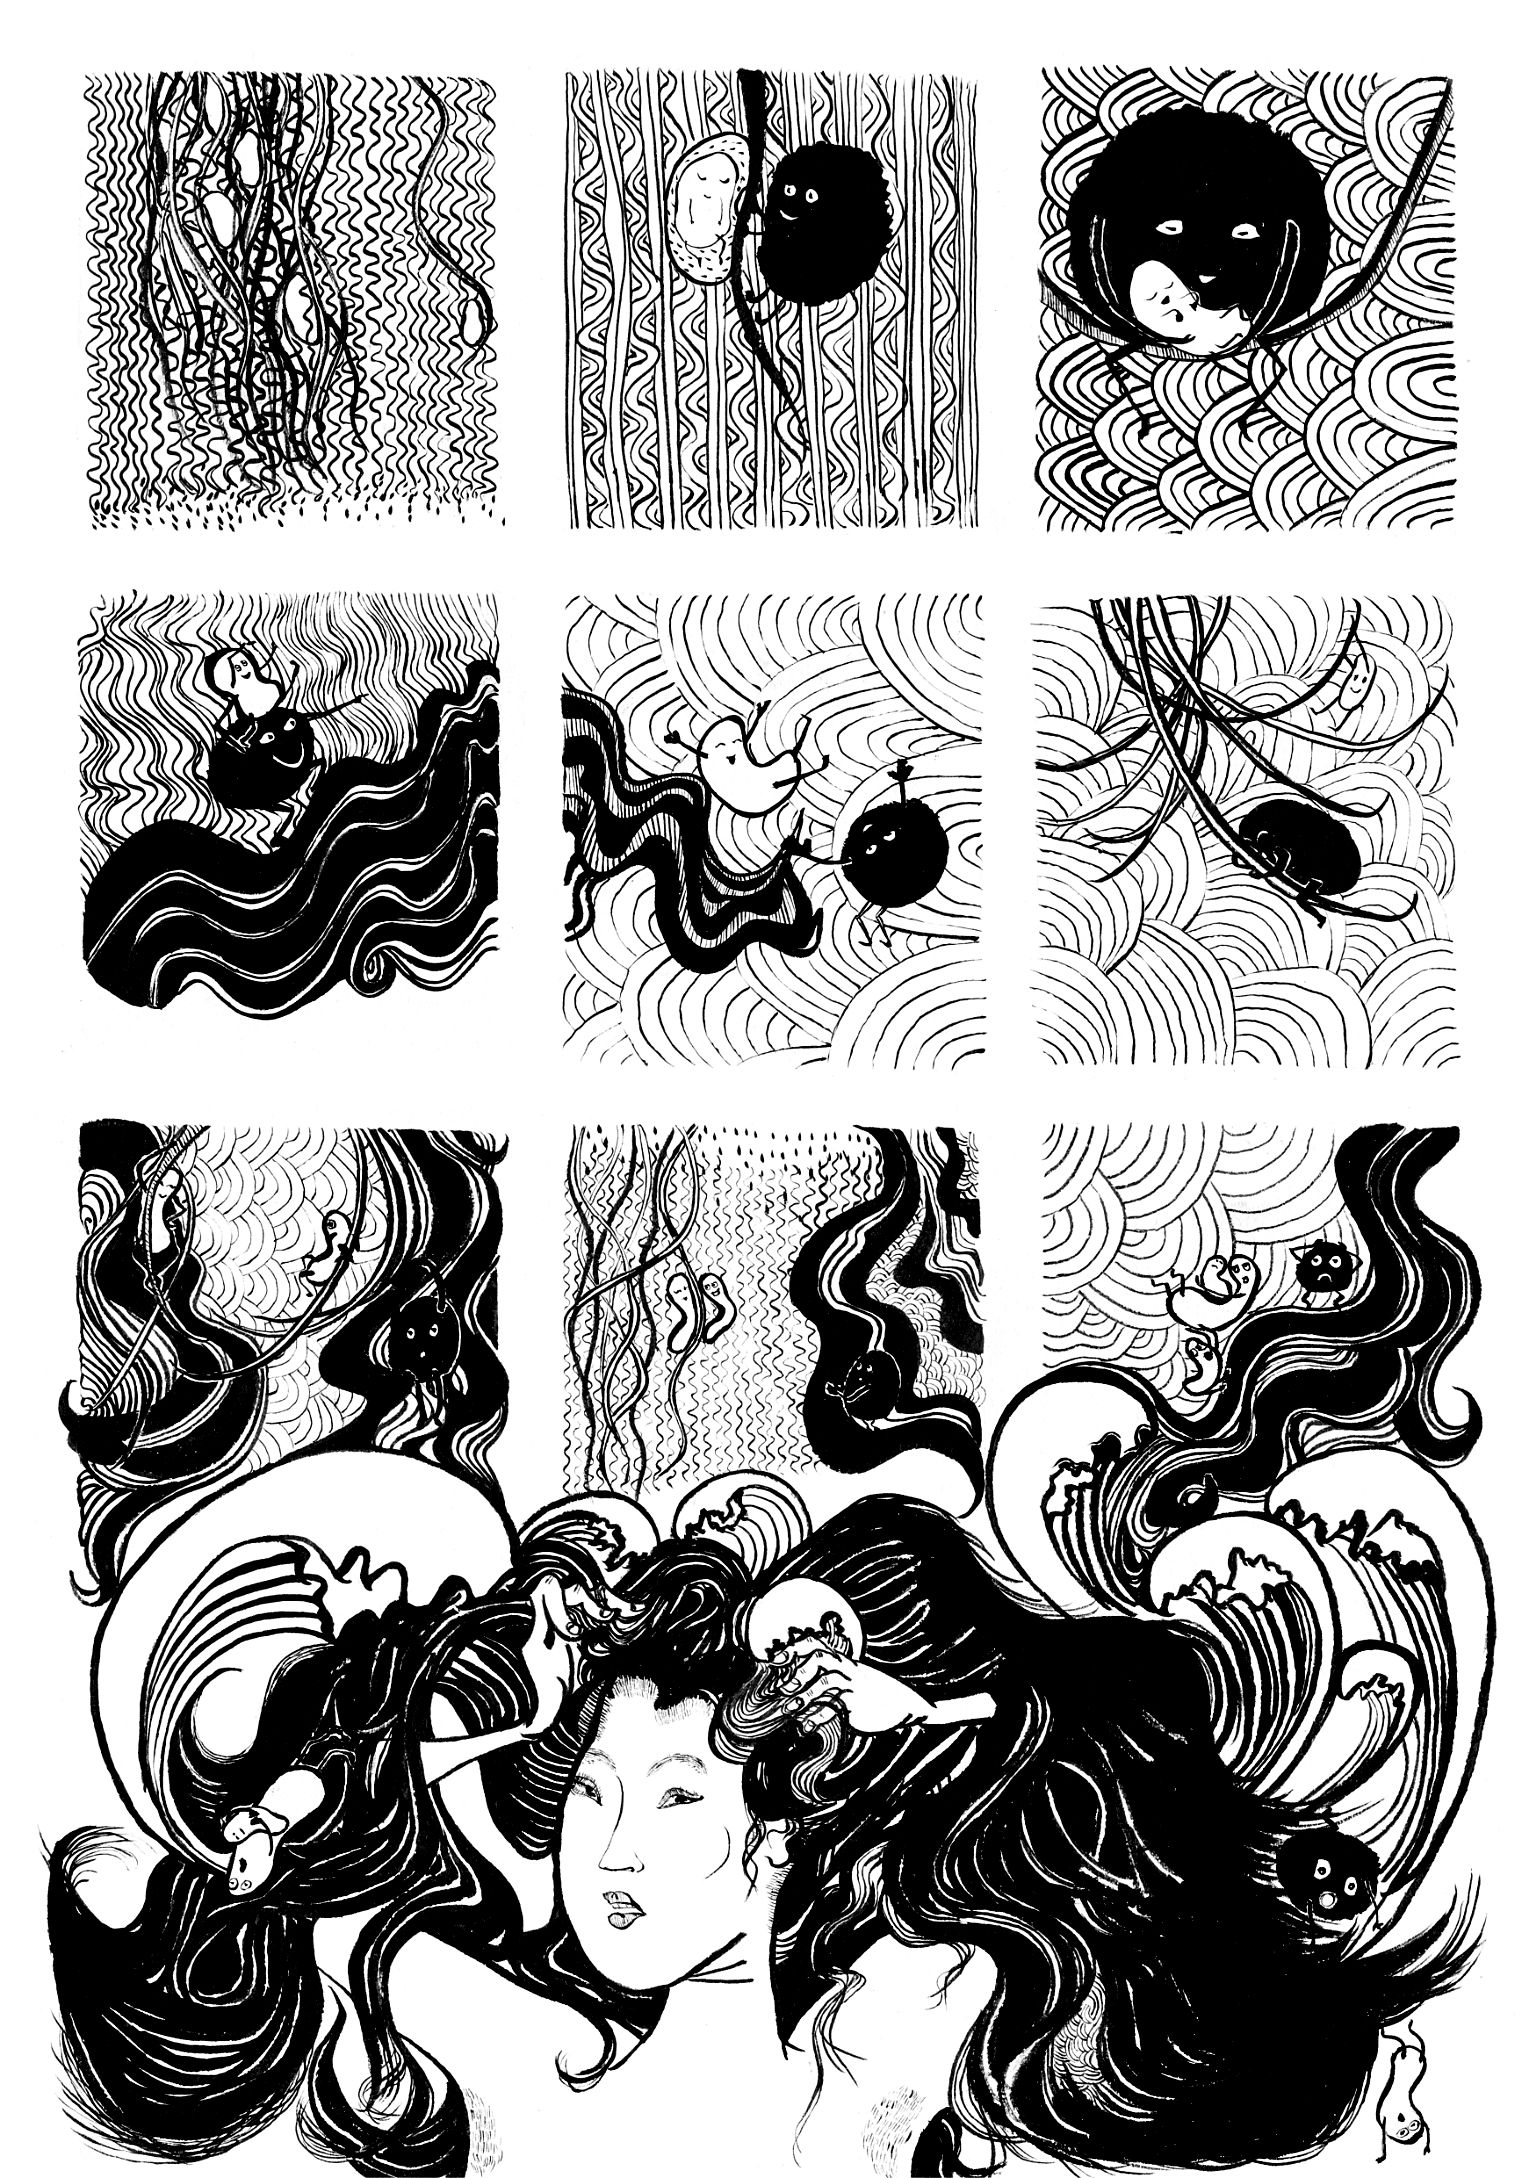 hair-waves-comic-strip